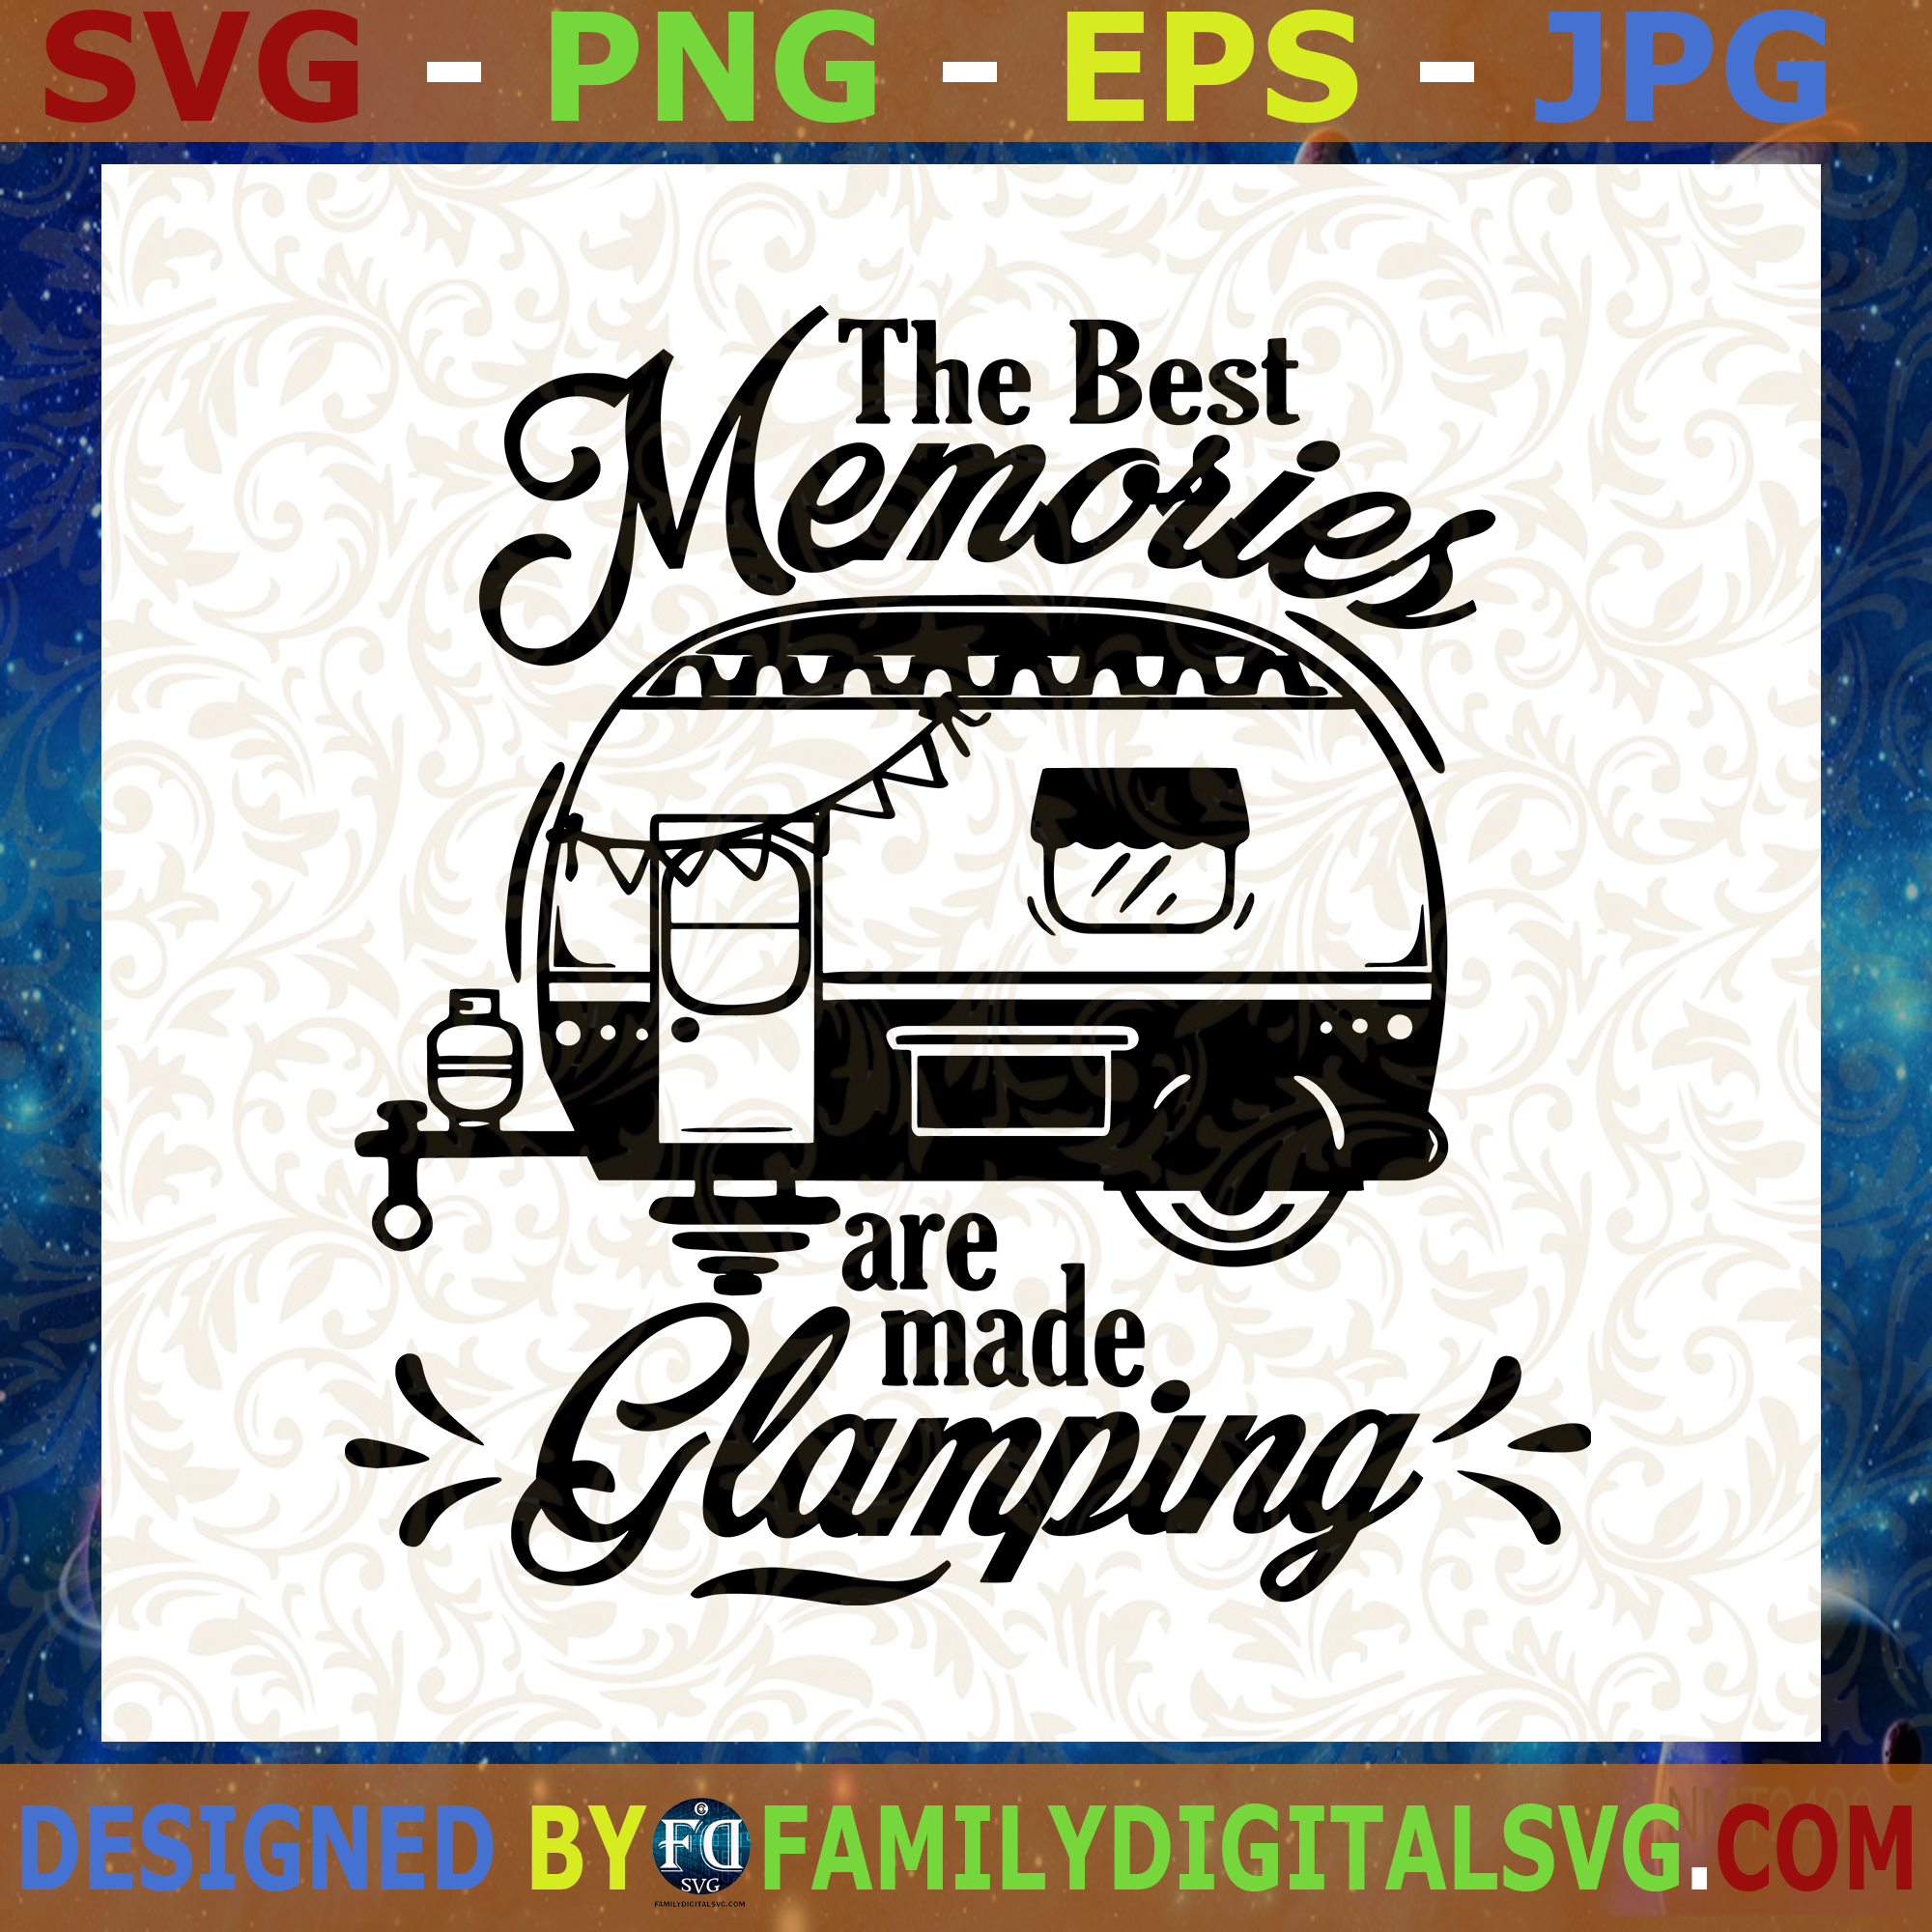 #The Best Memories Are Made Glamping SVG, Camping SVG, Travel SVG, Happy Camper